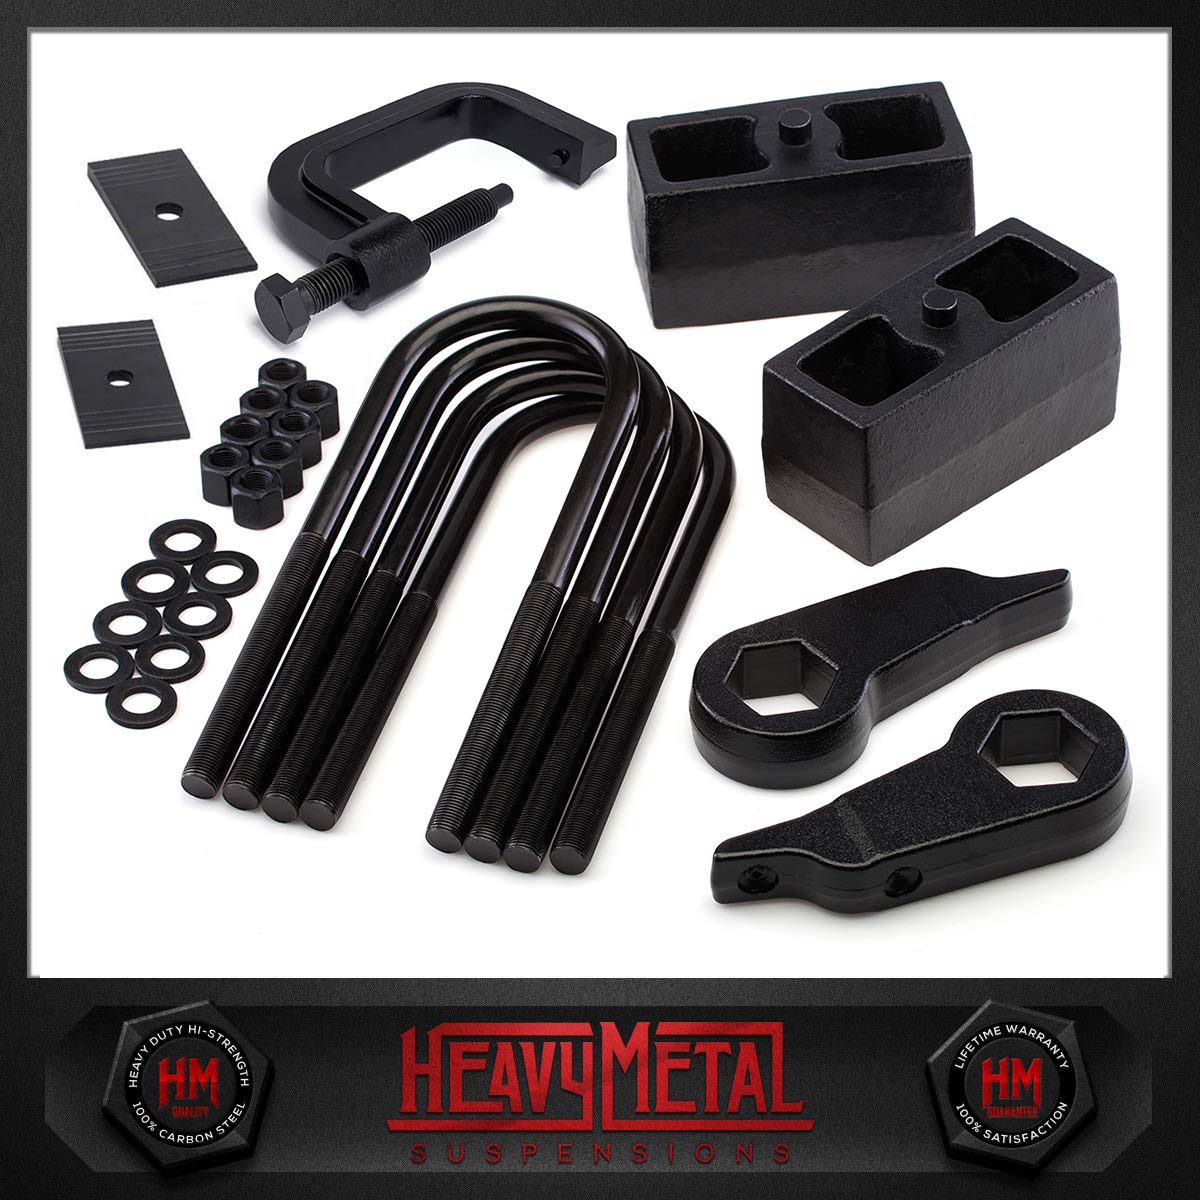 Suspension Lift Kit 3 Adjustable Front Lift Torsion Keys HeavyMetal 3 Rear Lift Blocks Torsion Tool Shims Ford Ranger 4x4